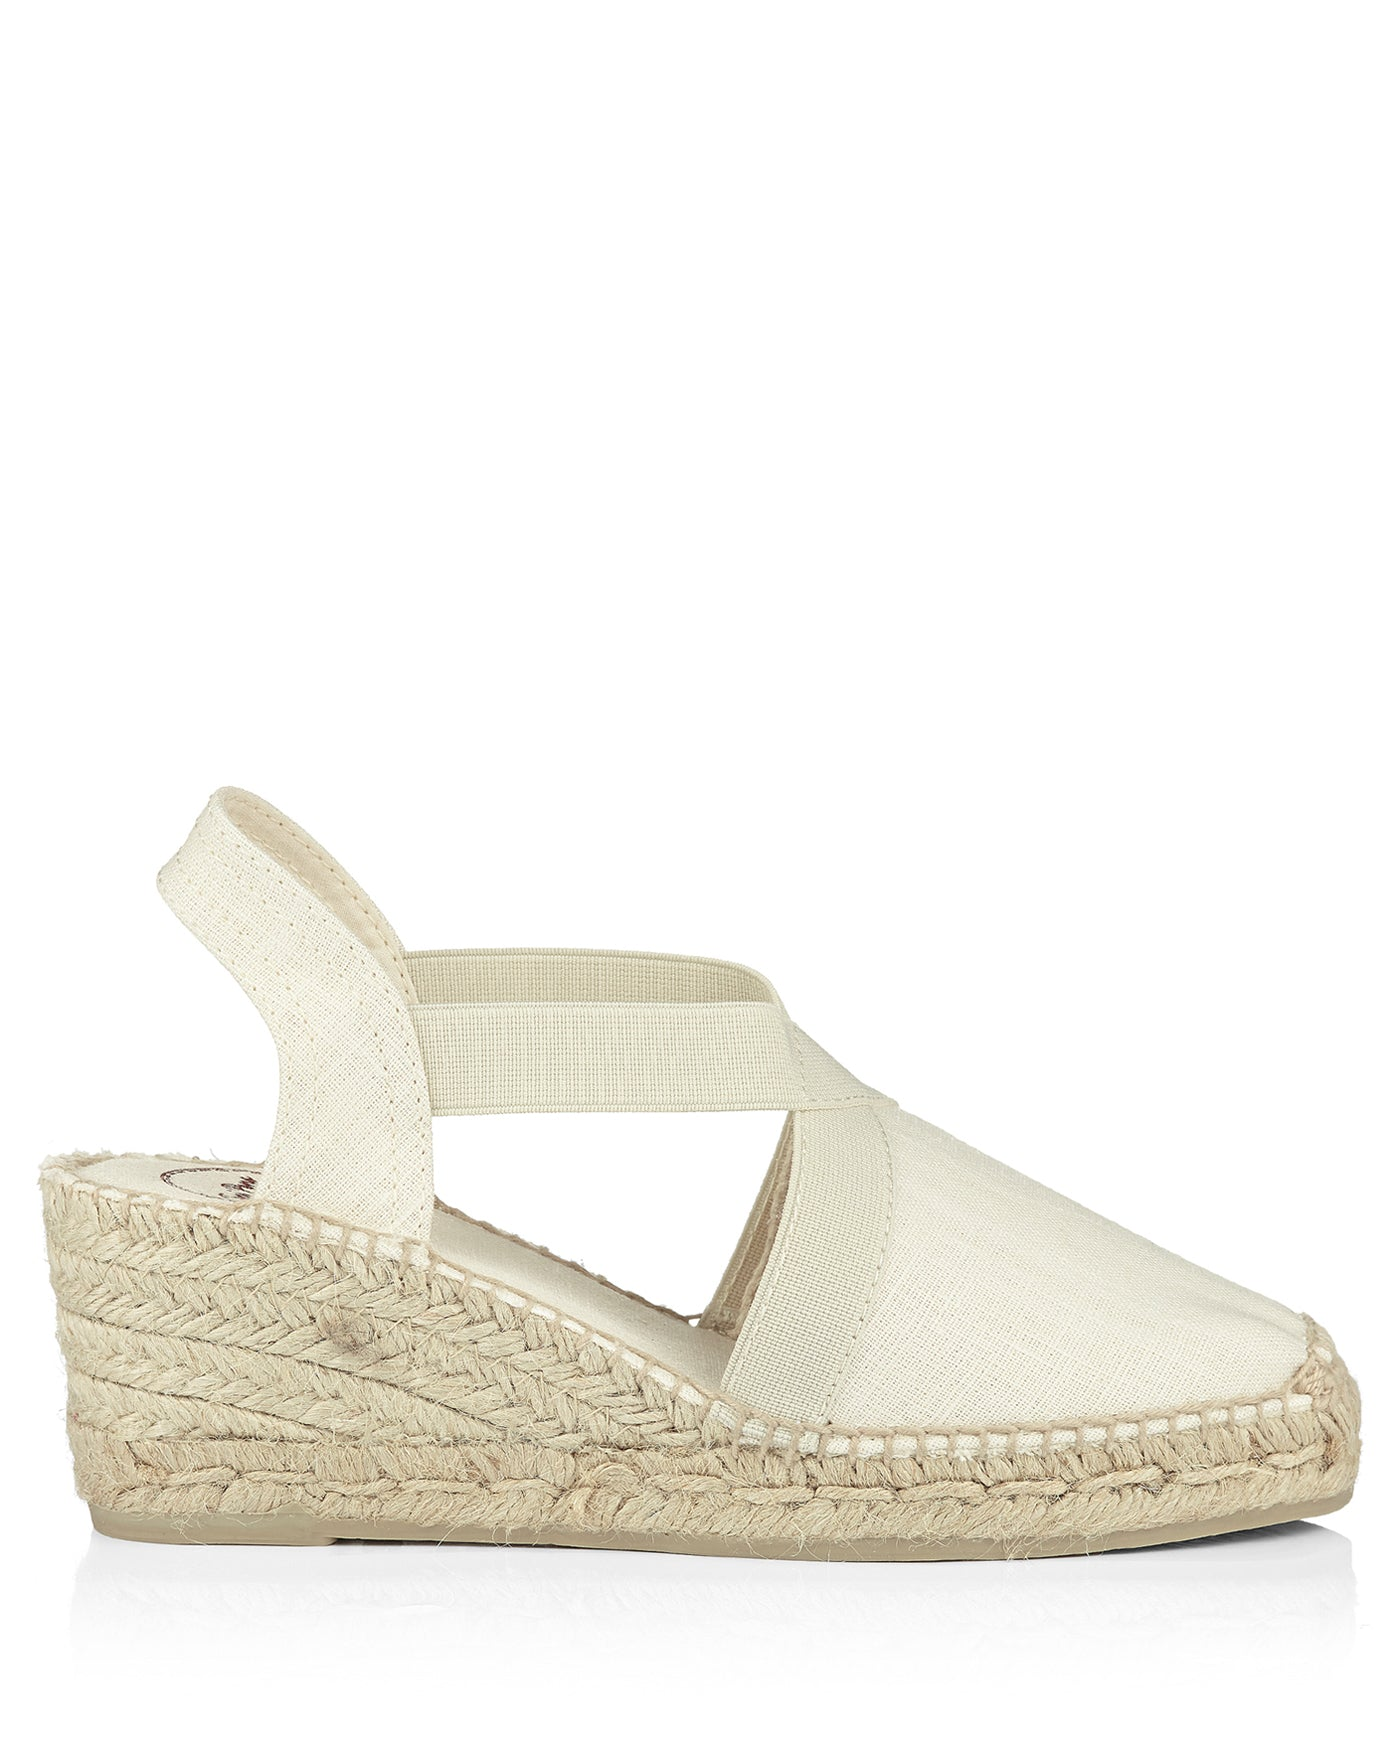 Ter Natural Linen Wedge Espadrille - The Espadrille Hut